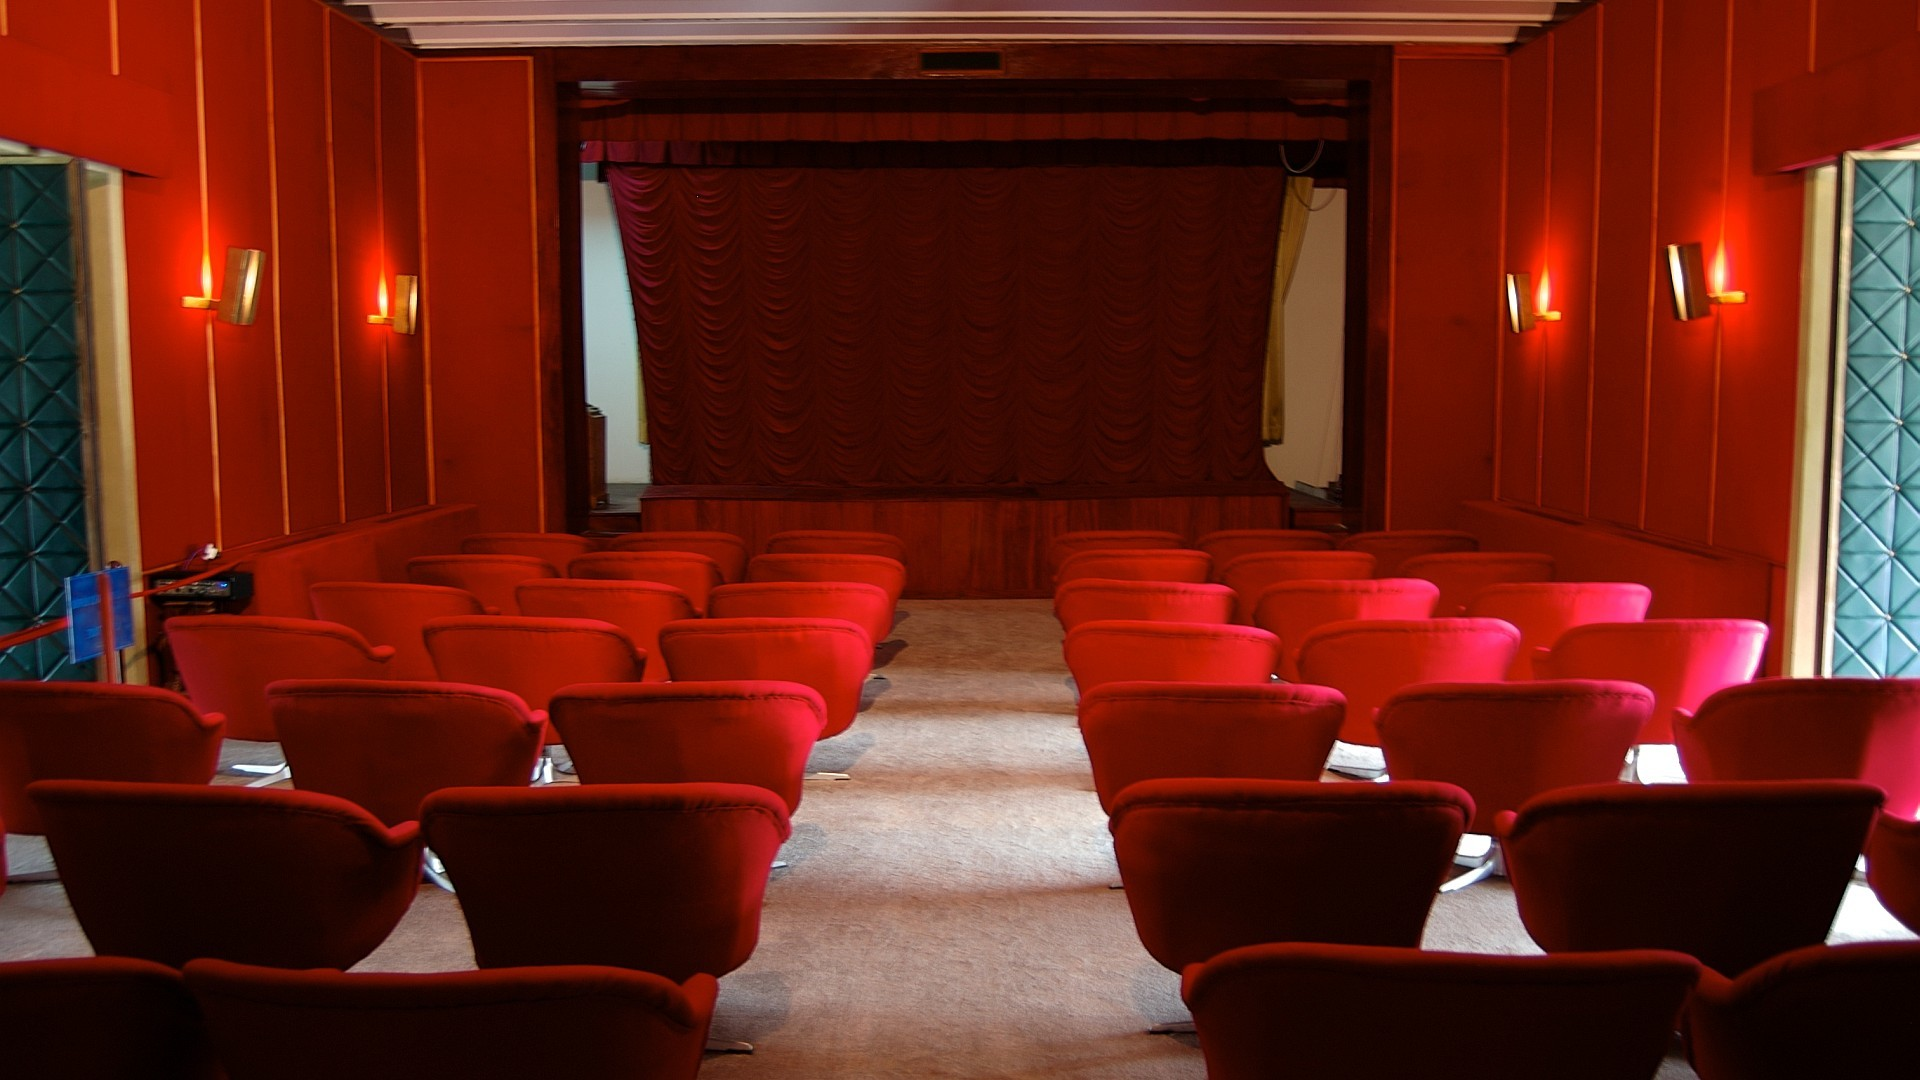 Theater backgrounds wallpapertag - Home theater wallpaper ...